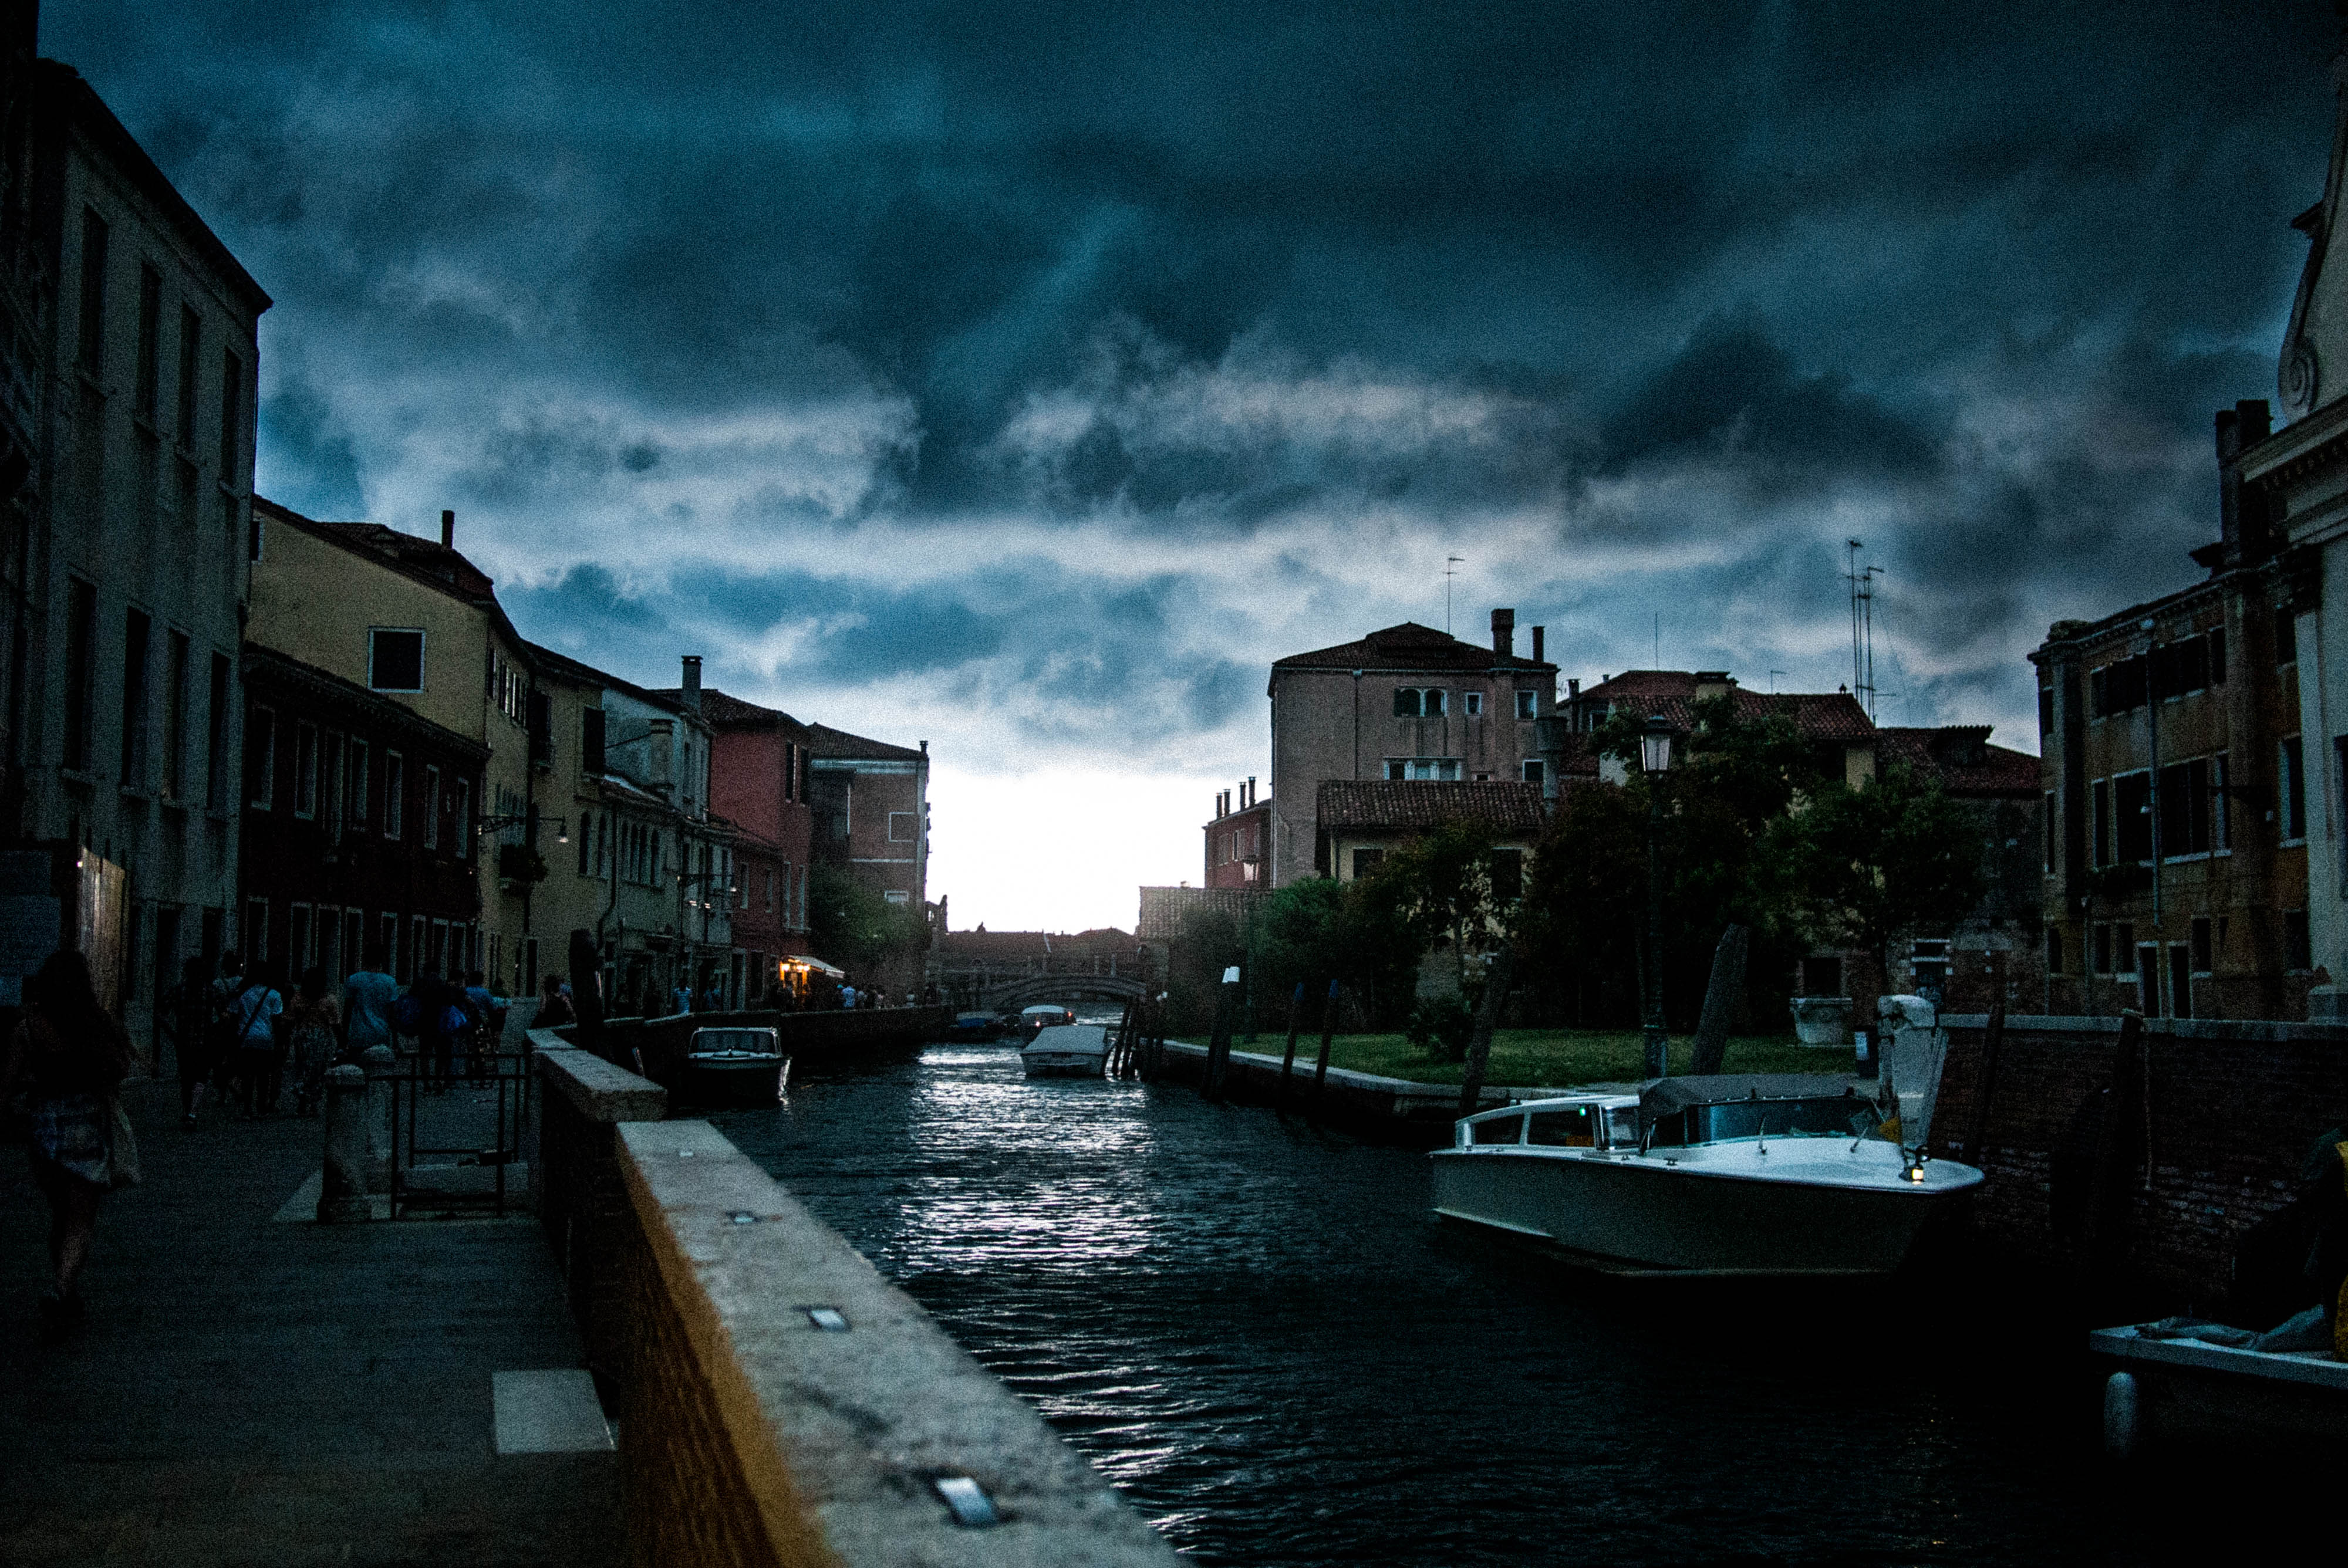 Storm in Venise #7